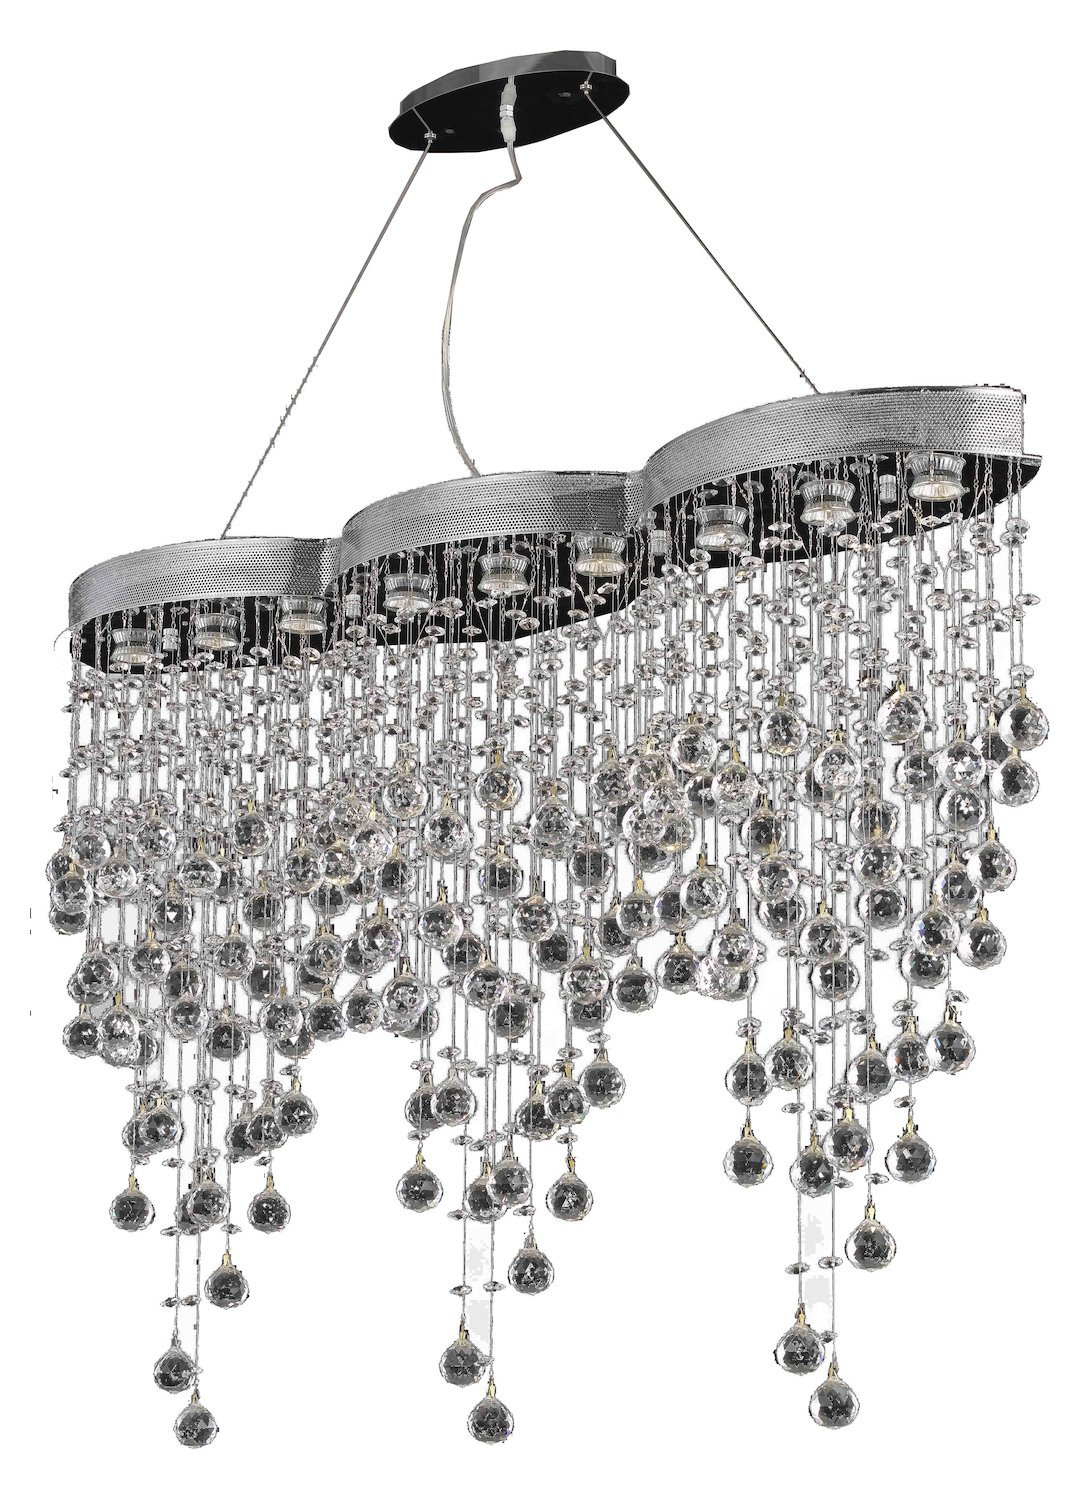 Galaxy Collection 9-Light Chrome Fix With Clear Swarovski Strass Crystal by Elegant Lighting